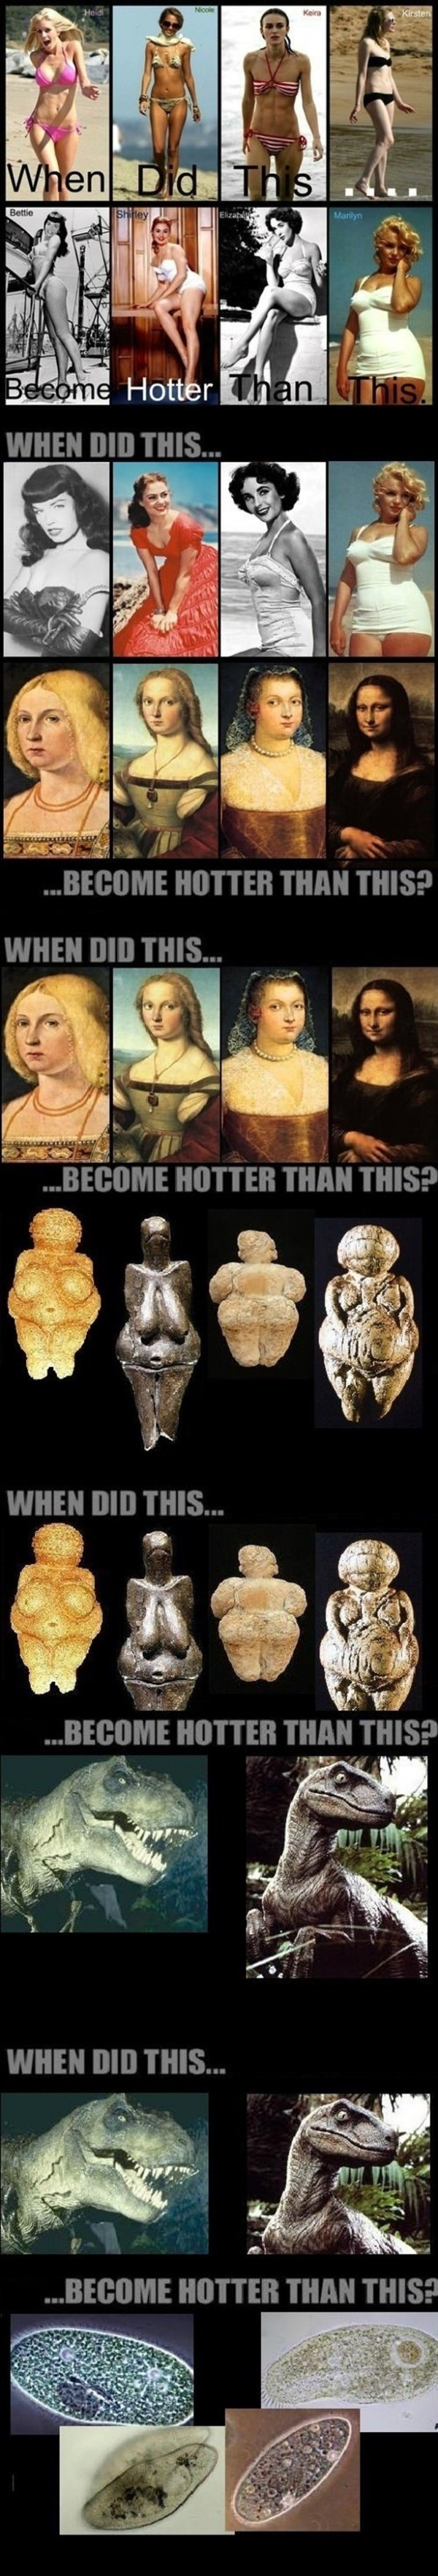 When did this become hotter than this?